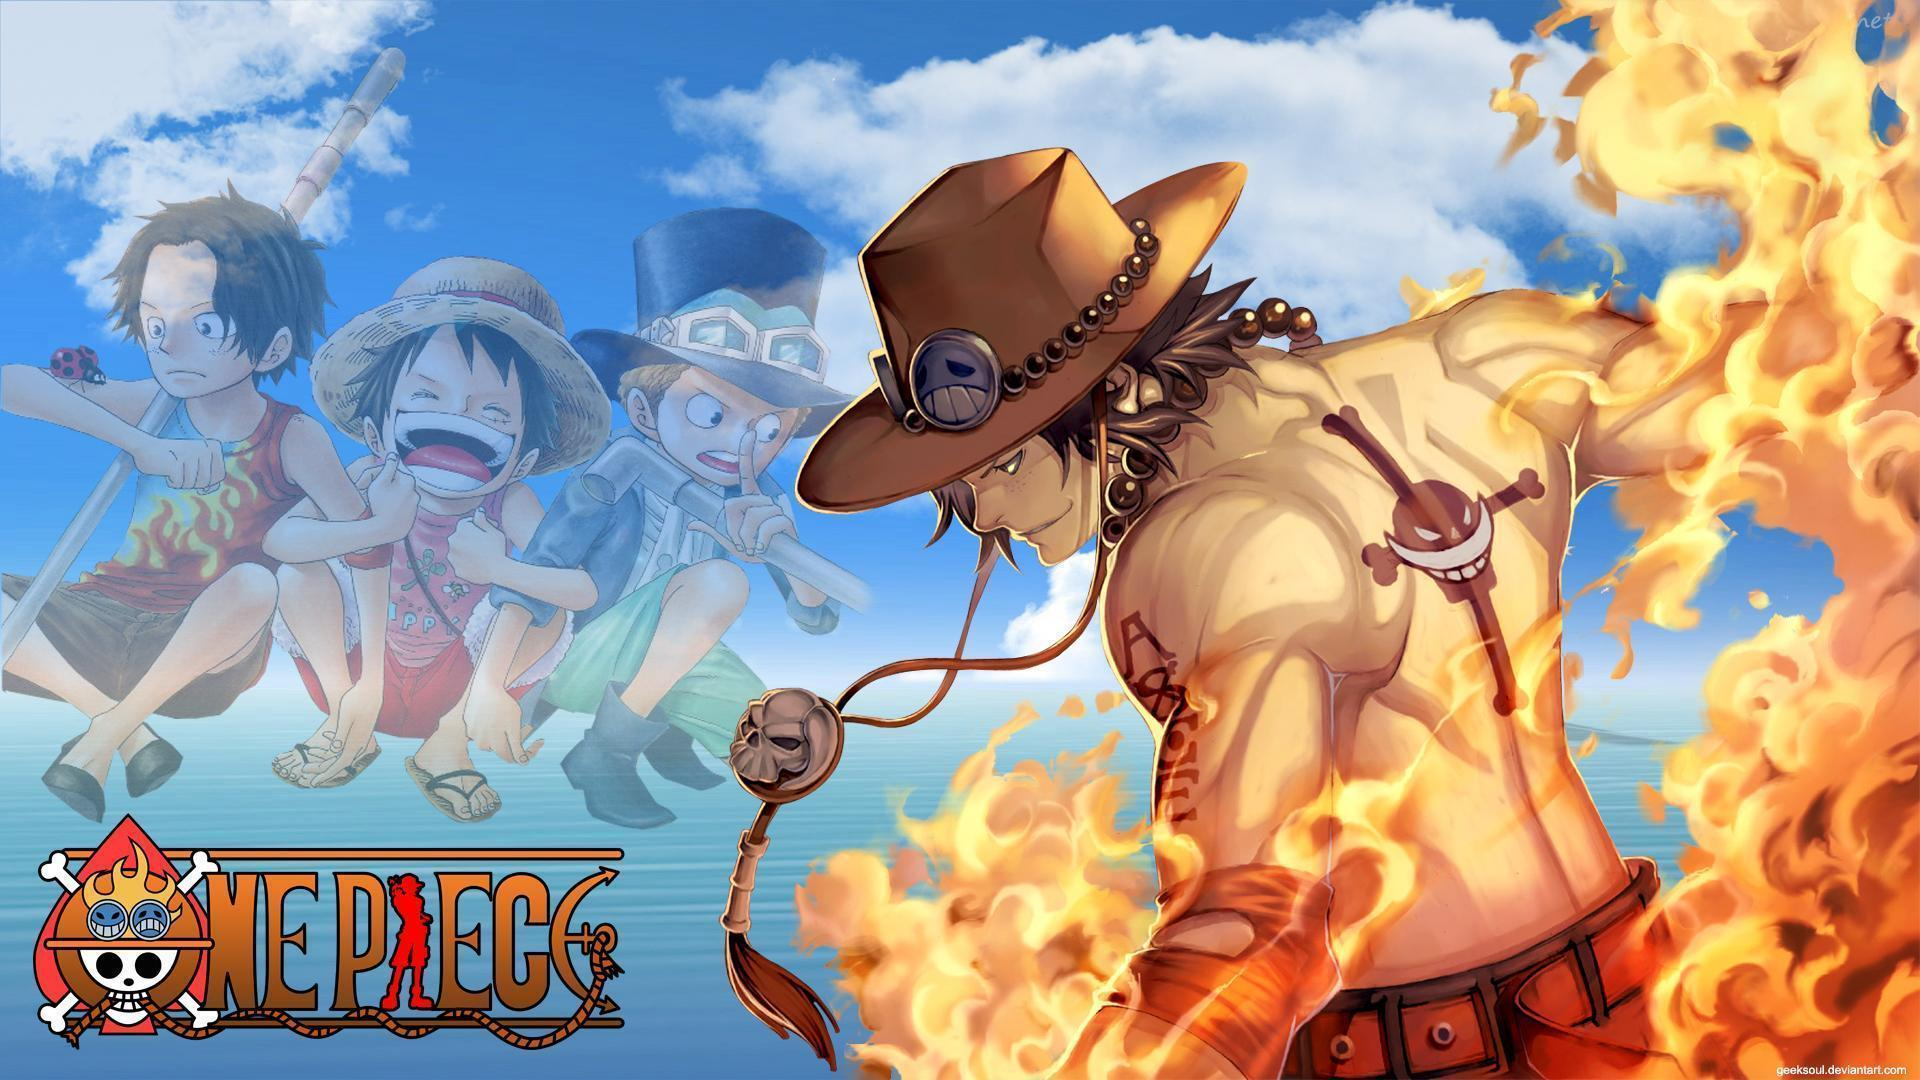 Ace One Piece Live Wallpapers Wallpapers